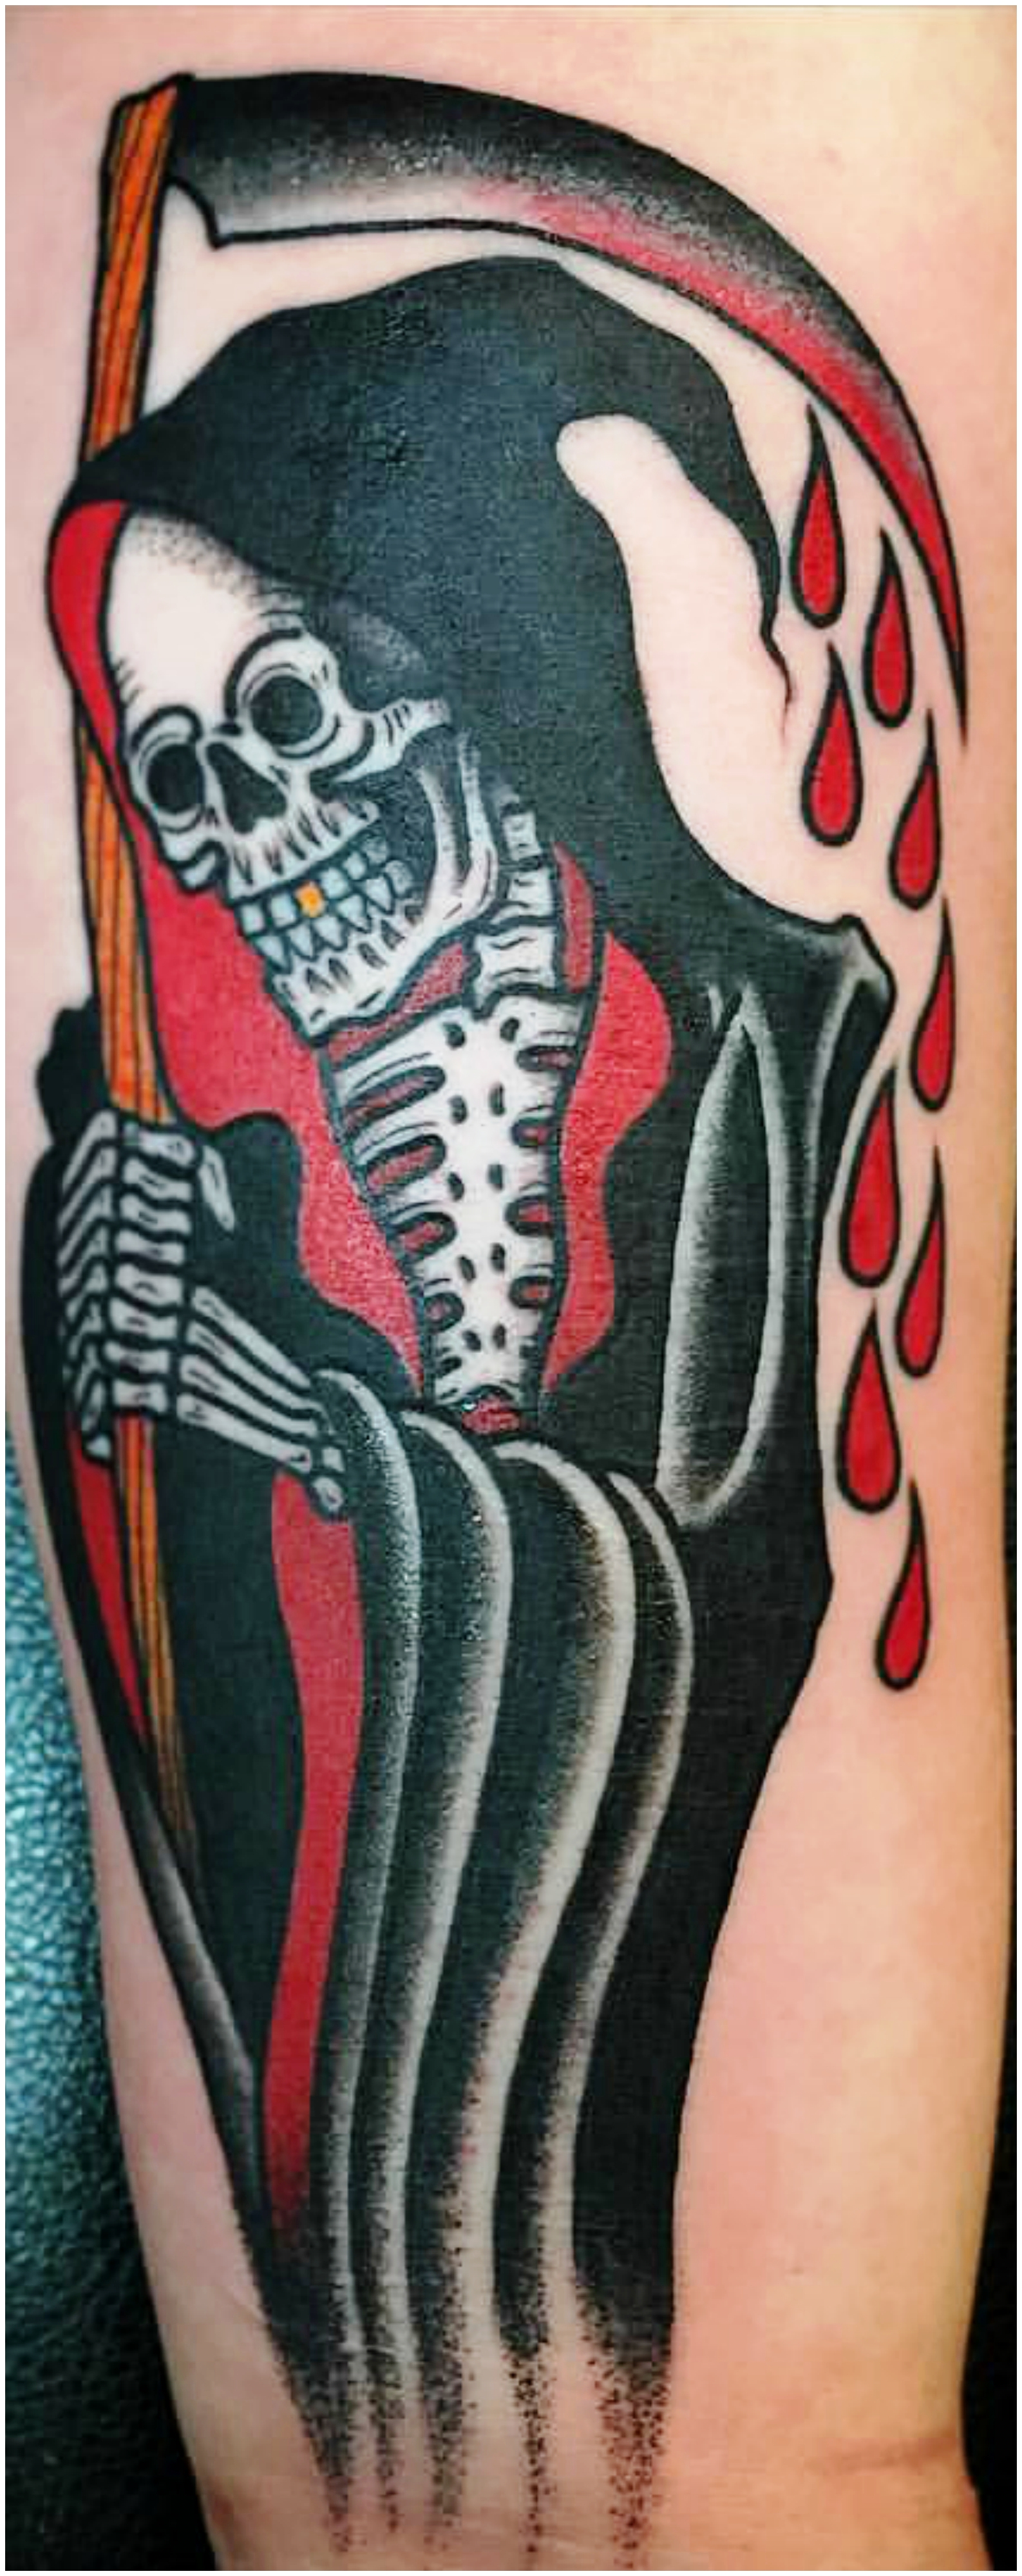 11. Dessins de tatouage de Grim Reaper